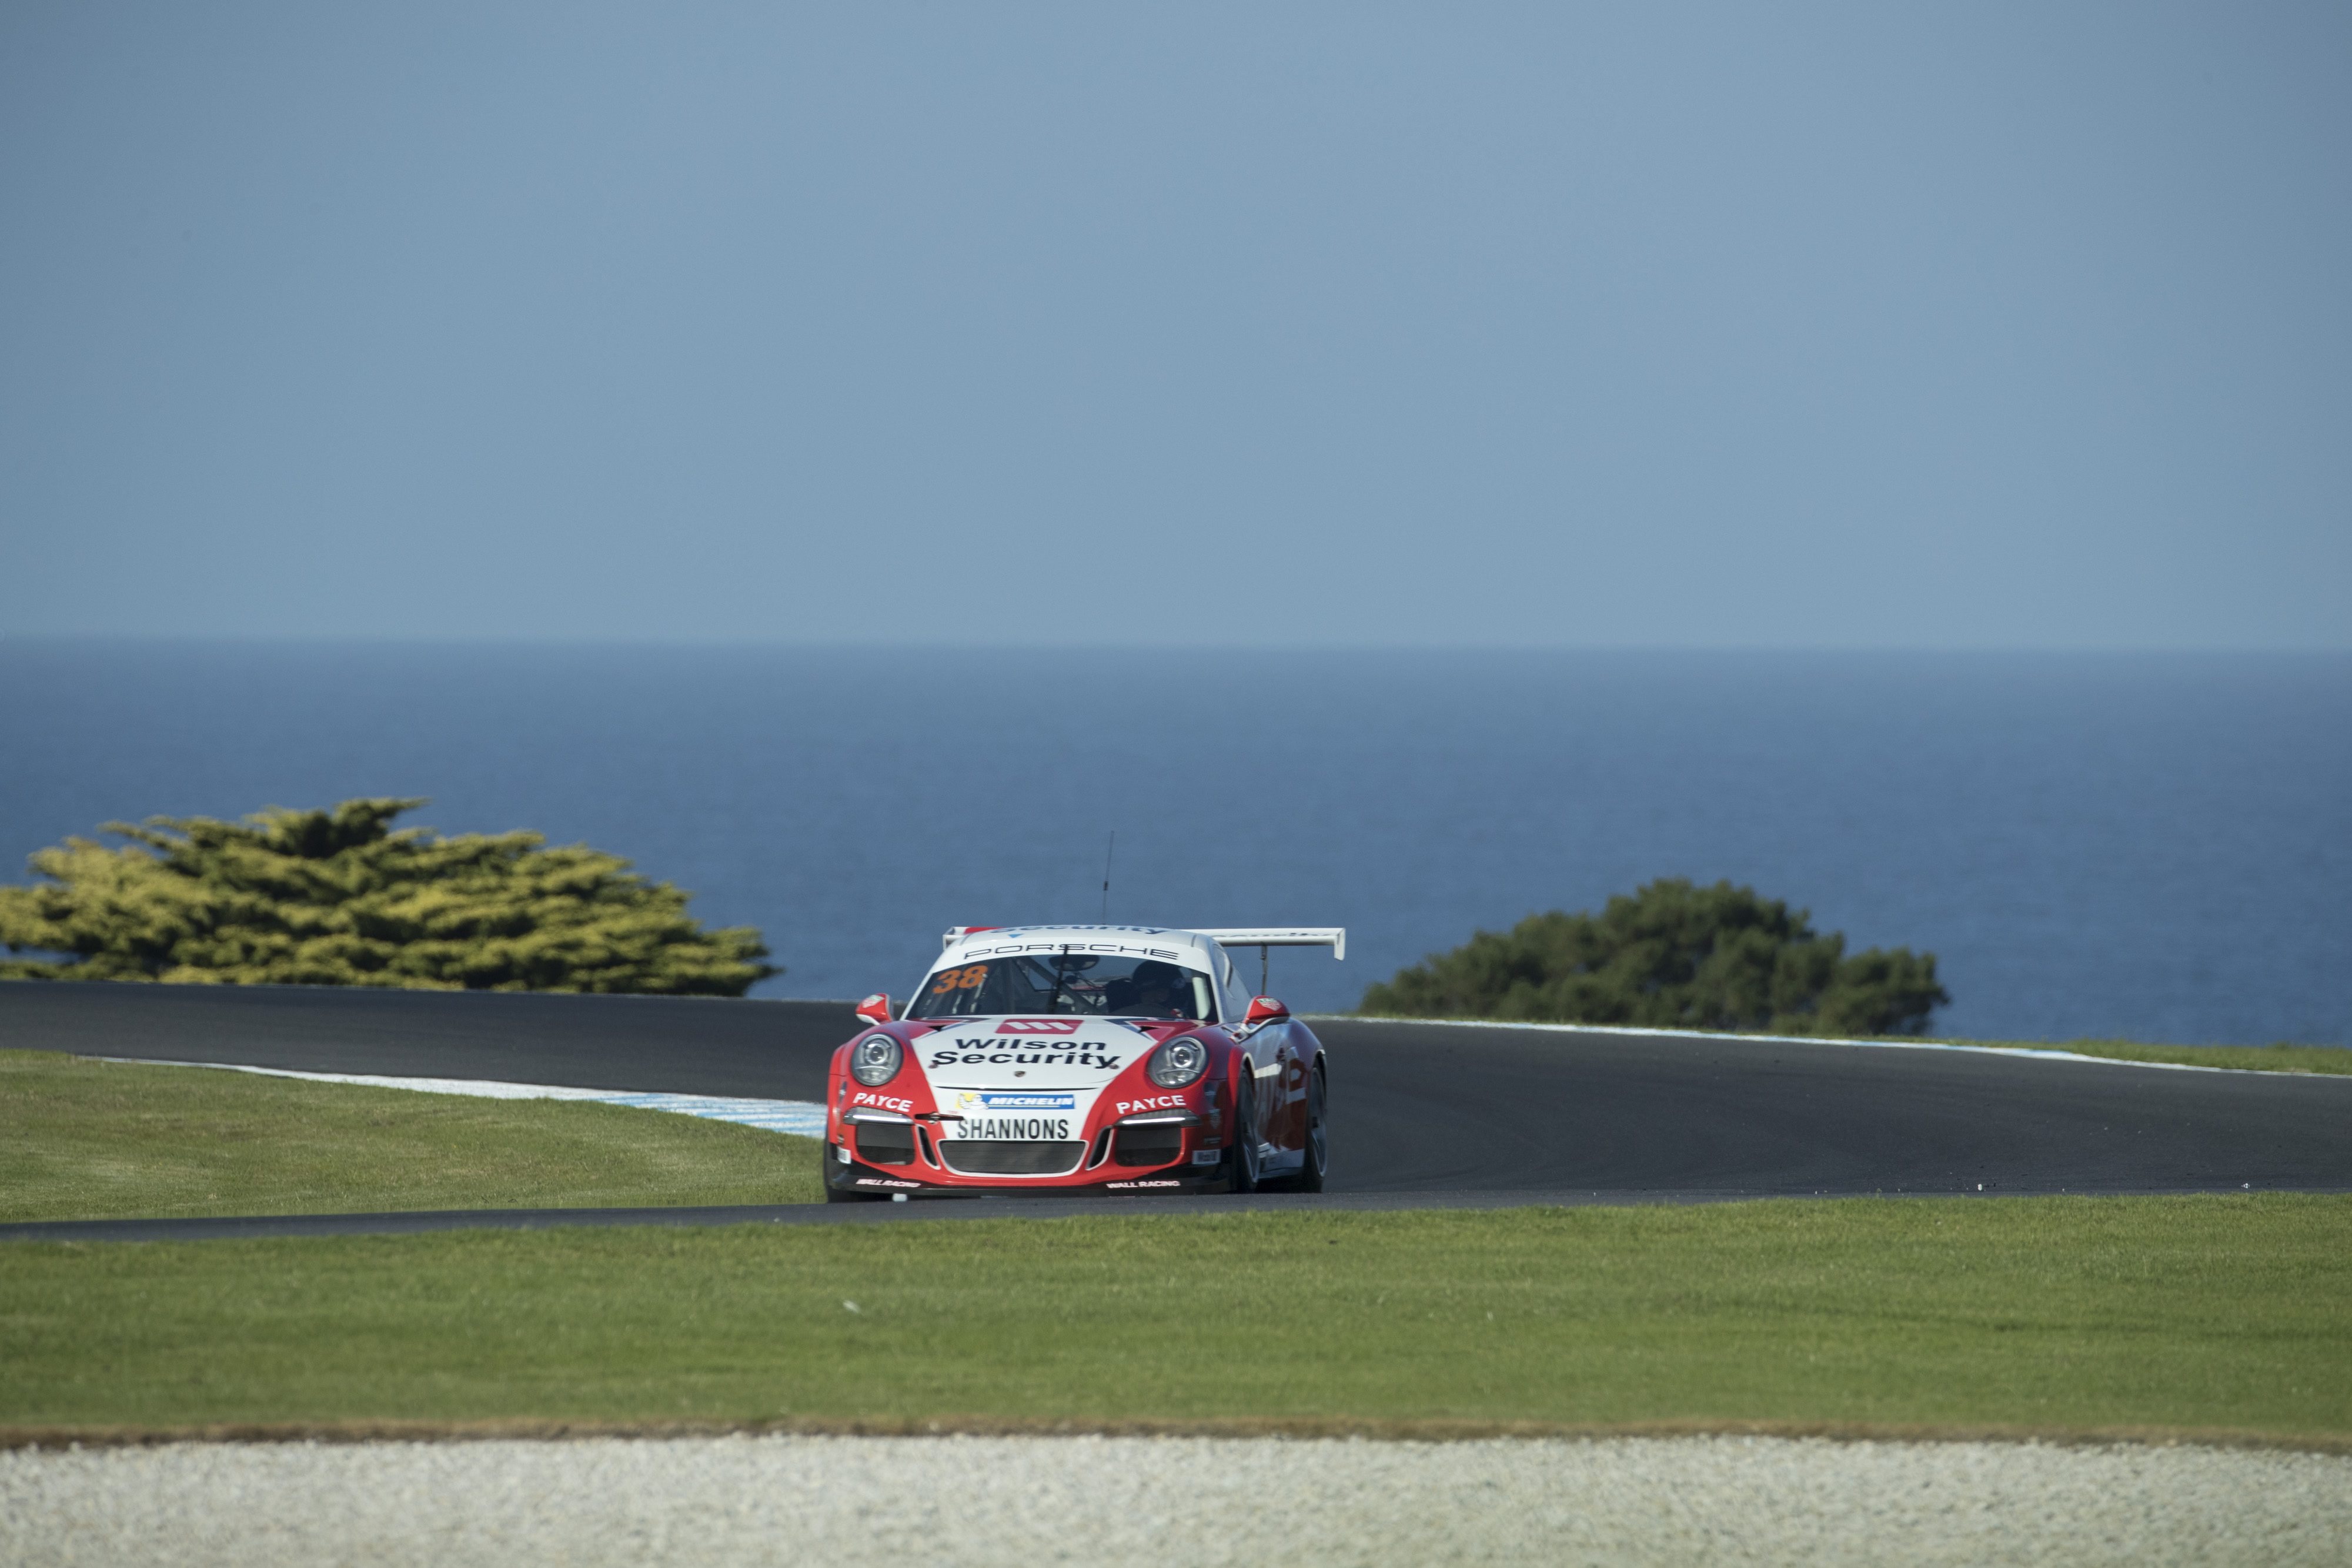 p38-Wall-CarreraCup-R3-2017-00047